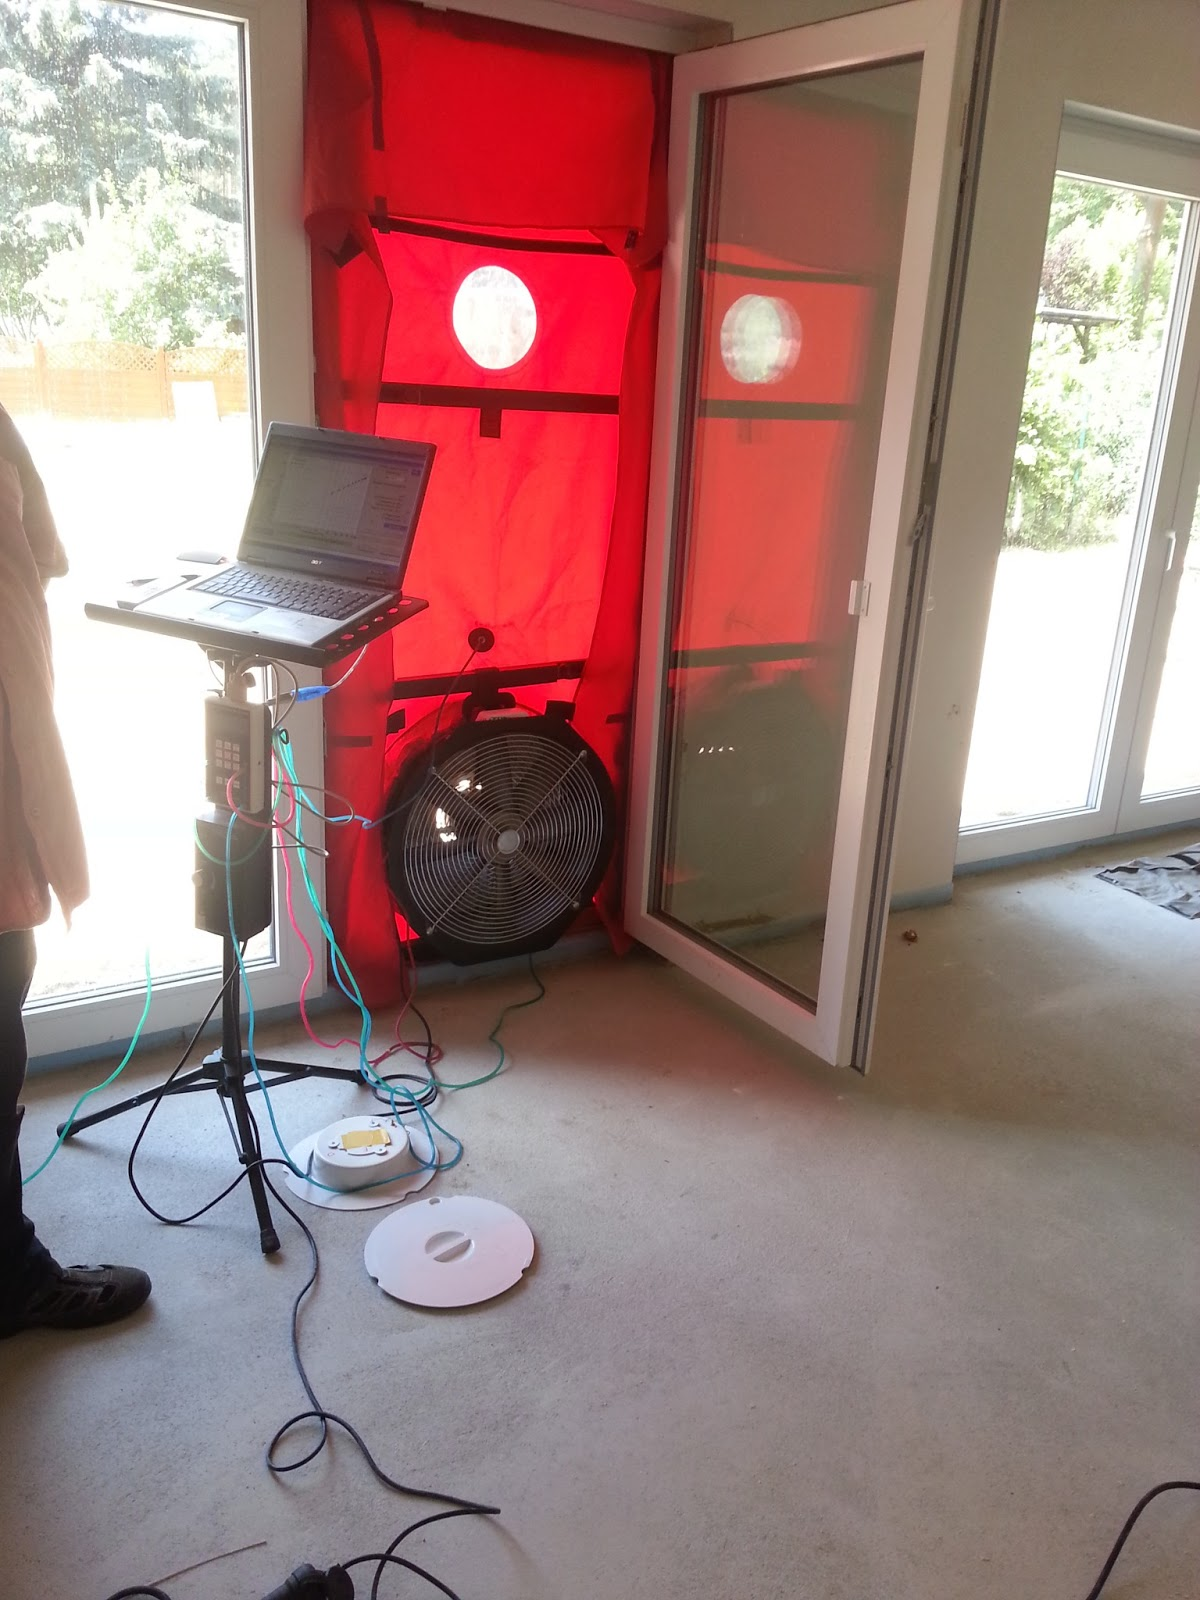 aileen und patrick bauen blower door test. Black Bedroom Furniture Sets. Home Design Ideas